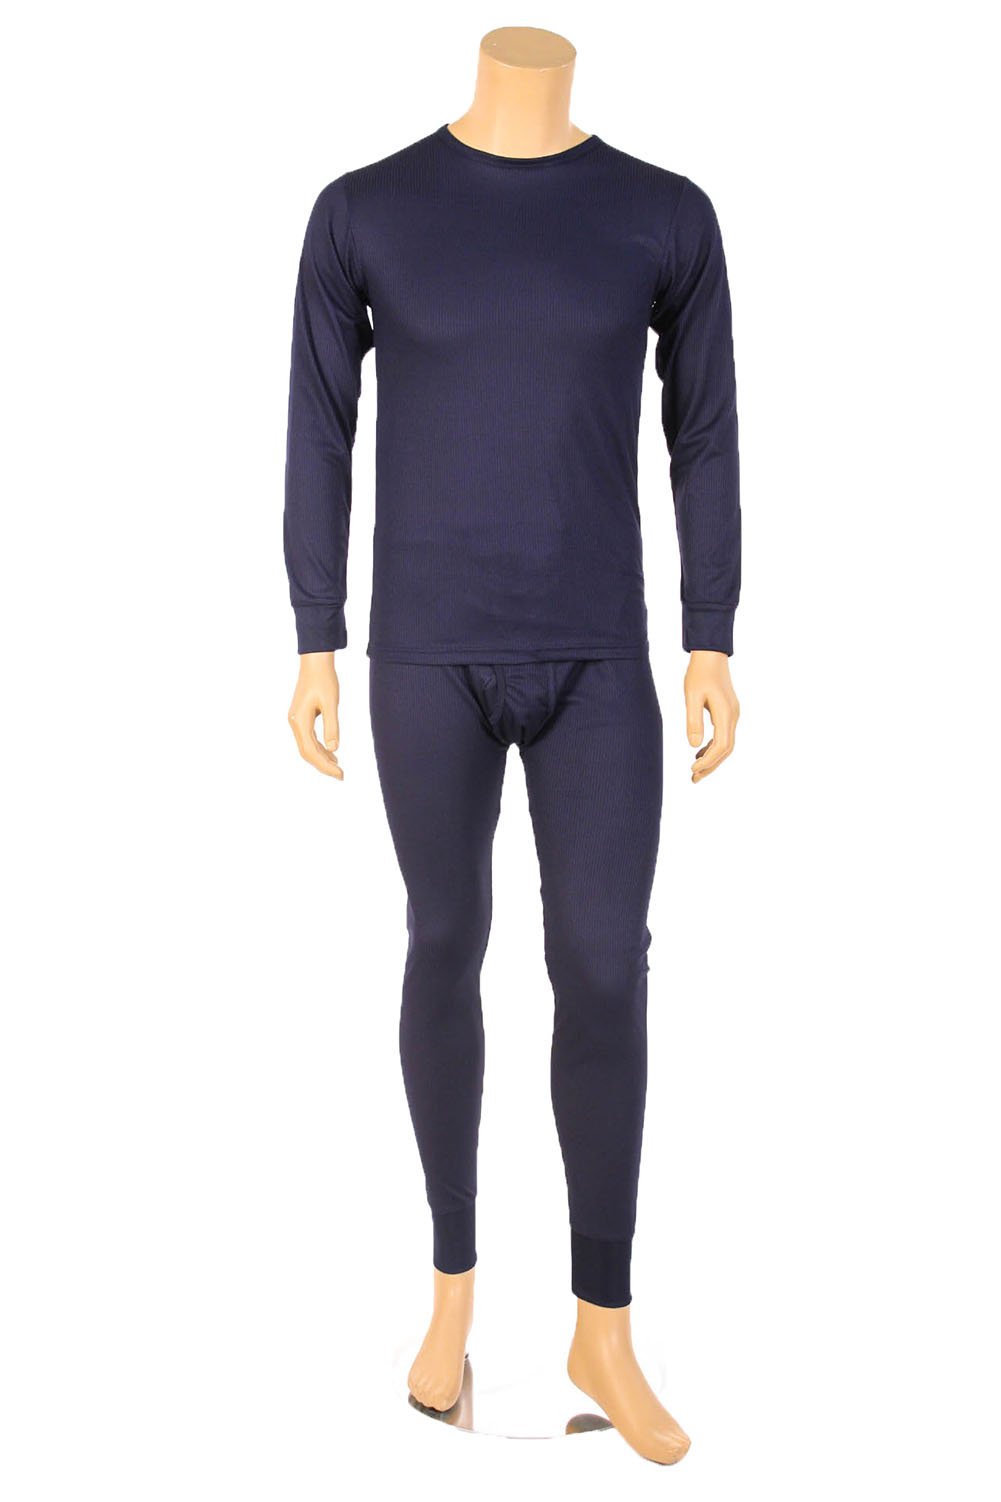 Men's Two Piece Long Johns Thermal Underwear Set by